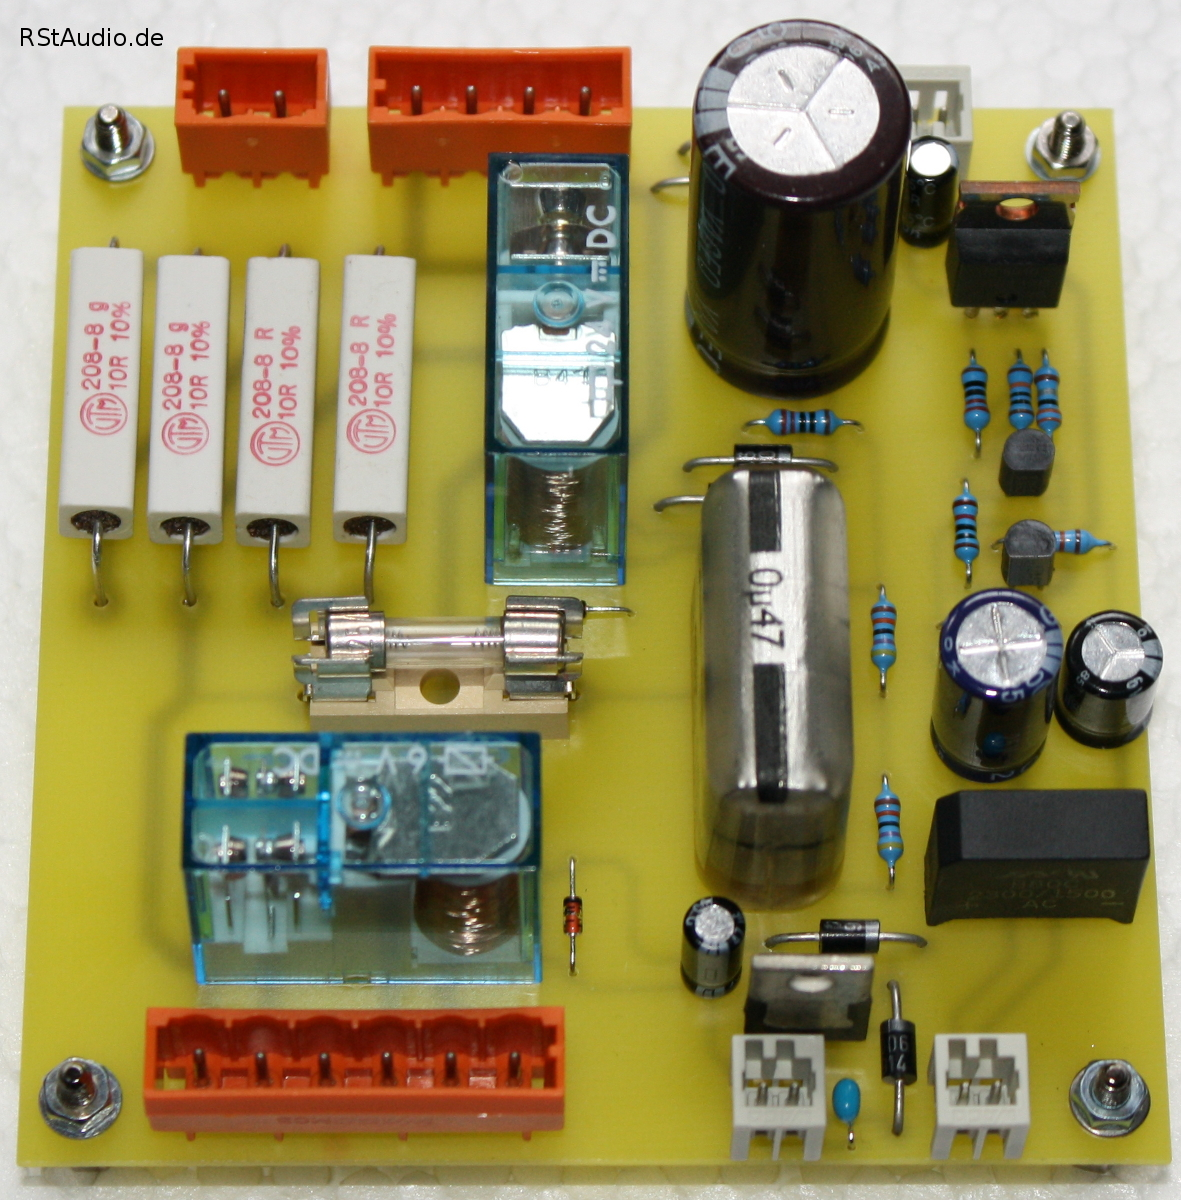 Es4 Pass Xa305 Clone Labs Aleph2 Diy Amplifier Kkpcb Layout Board With Inrush Current Limiter And Remote On Off